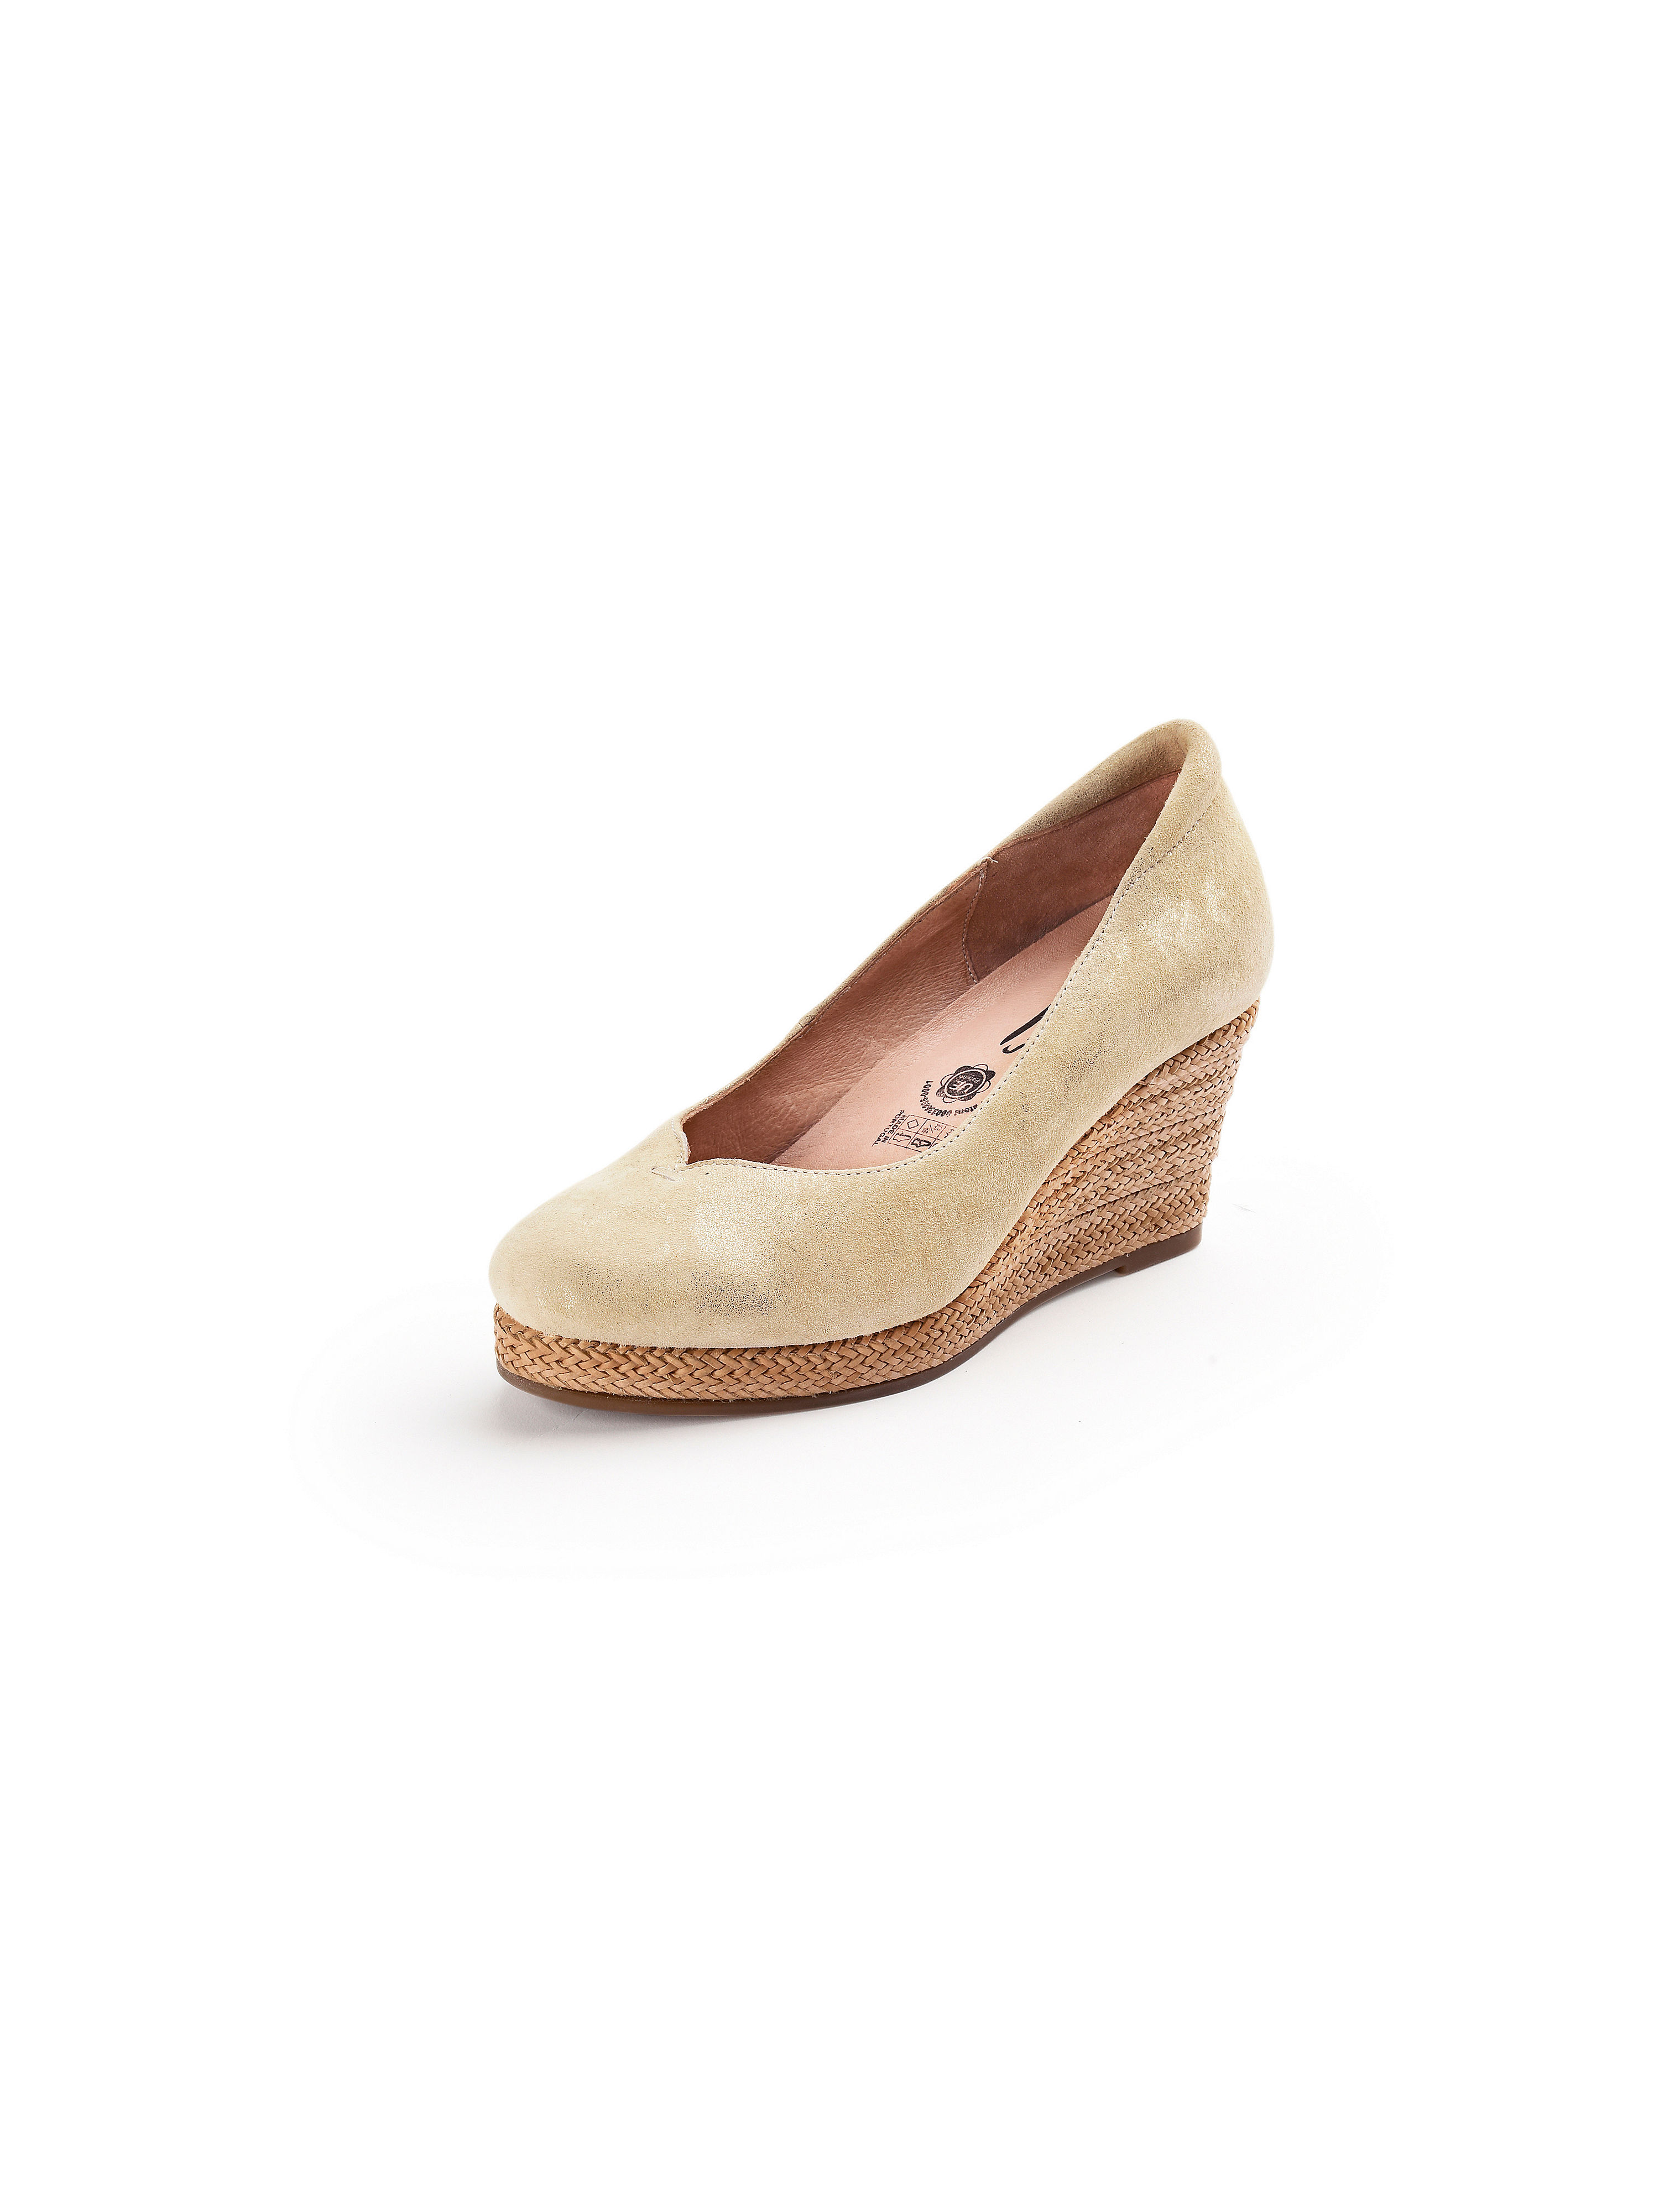 shoes-from-softwaves-beige